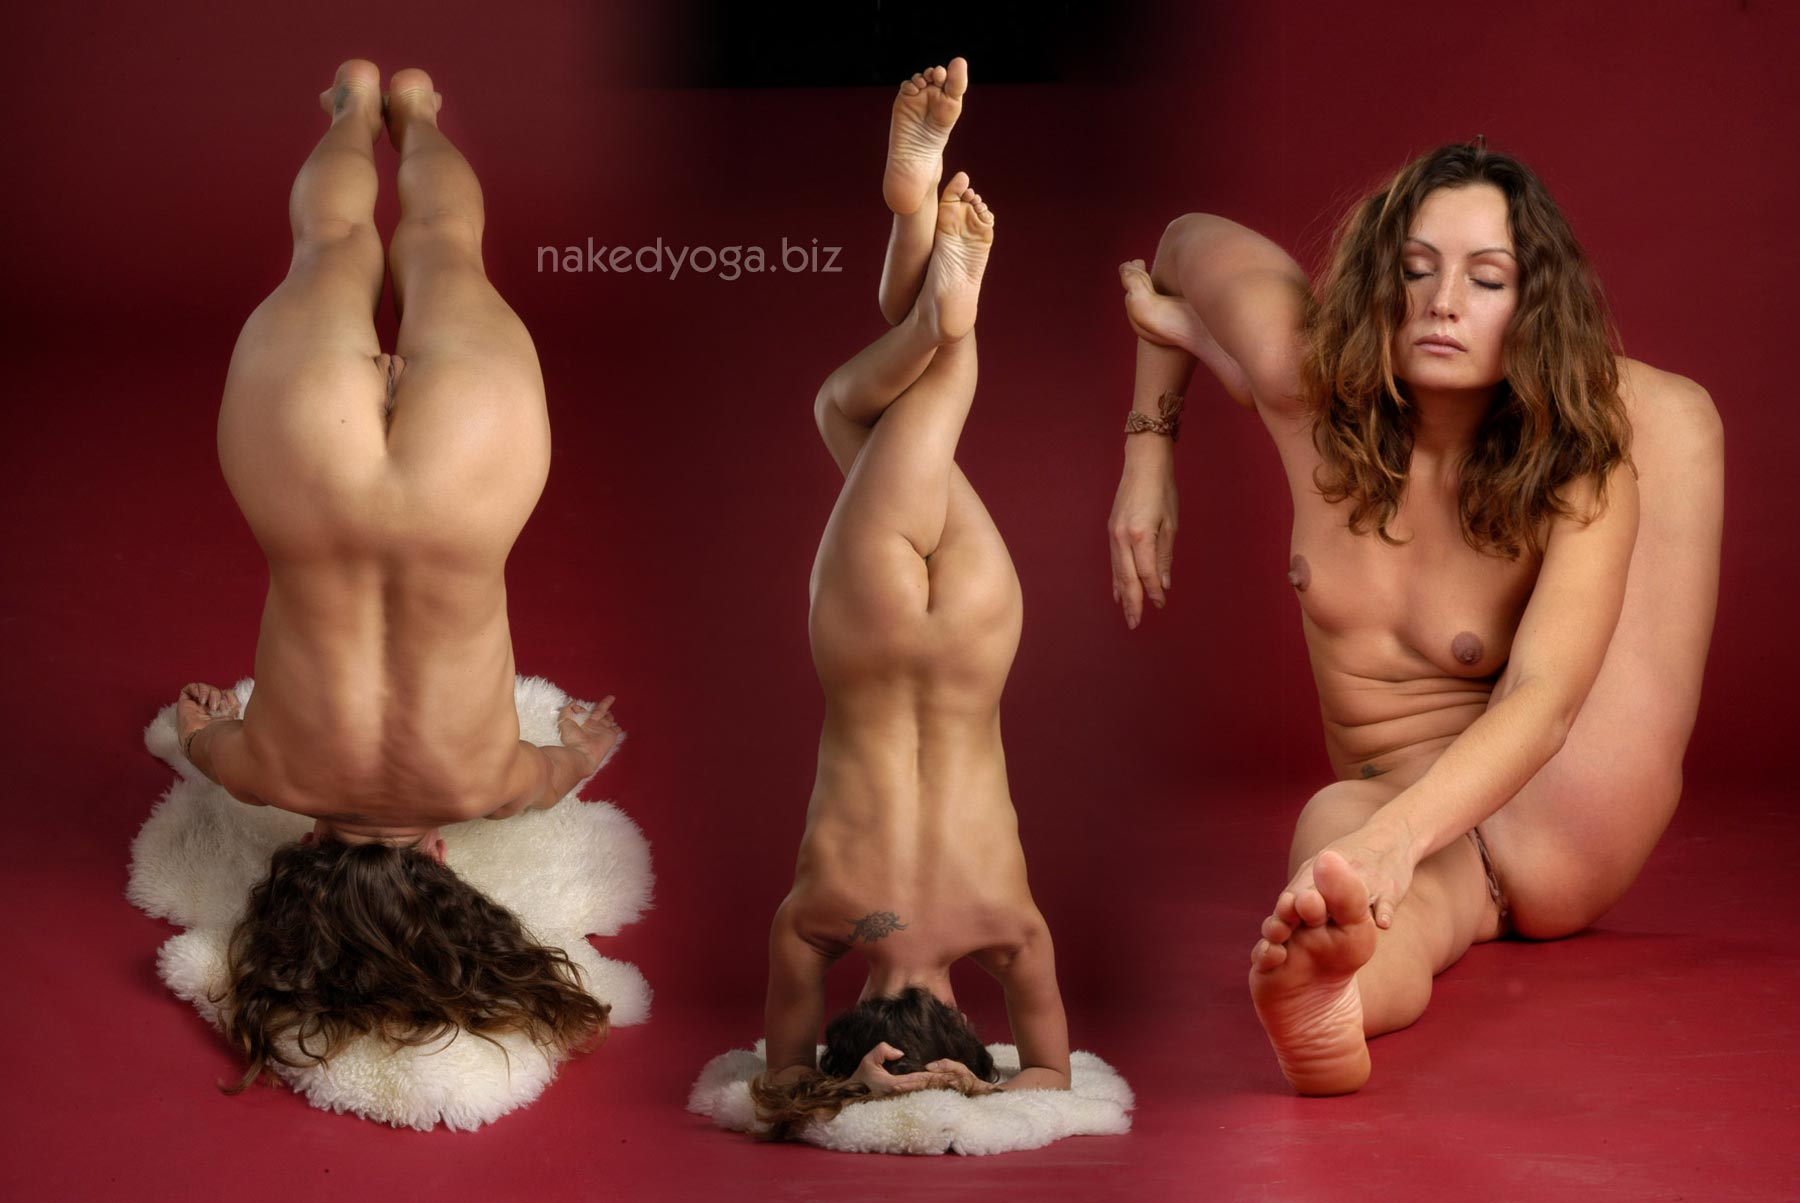 Naked yoga galleries. There isn't anything online for me that could be ...